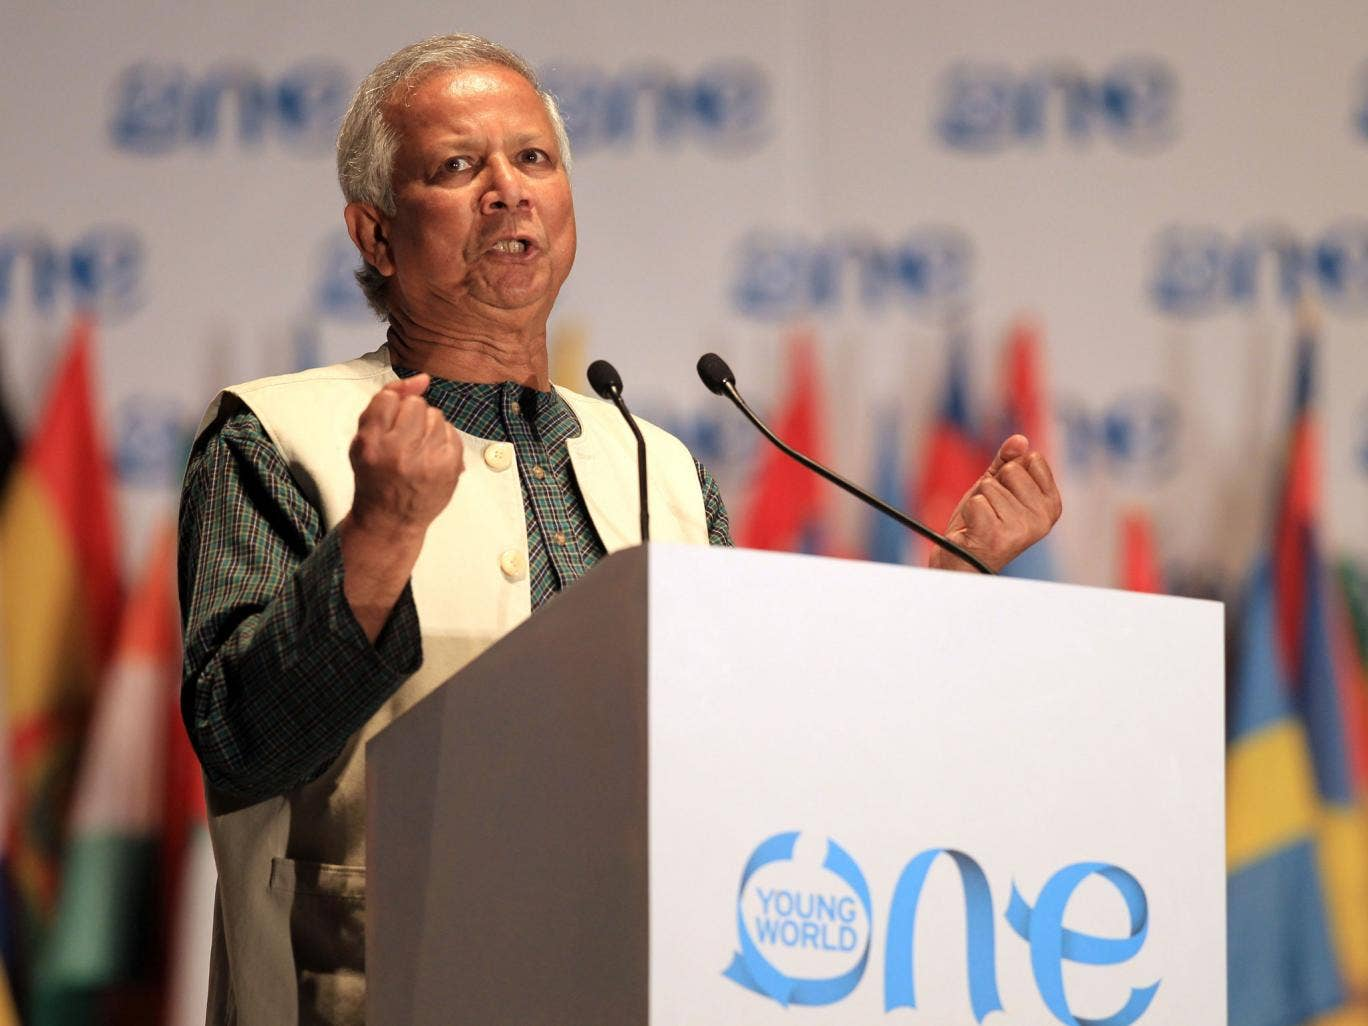 But Mr Yunus and the government have argued in recent years over the running of the bank